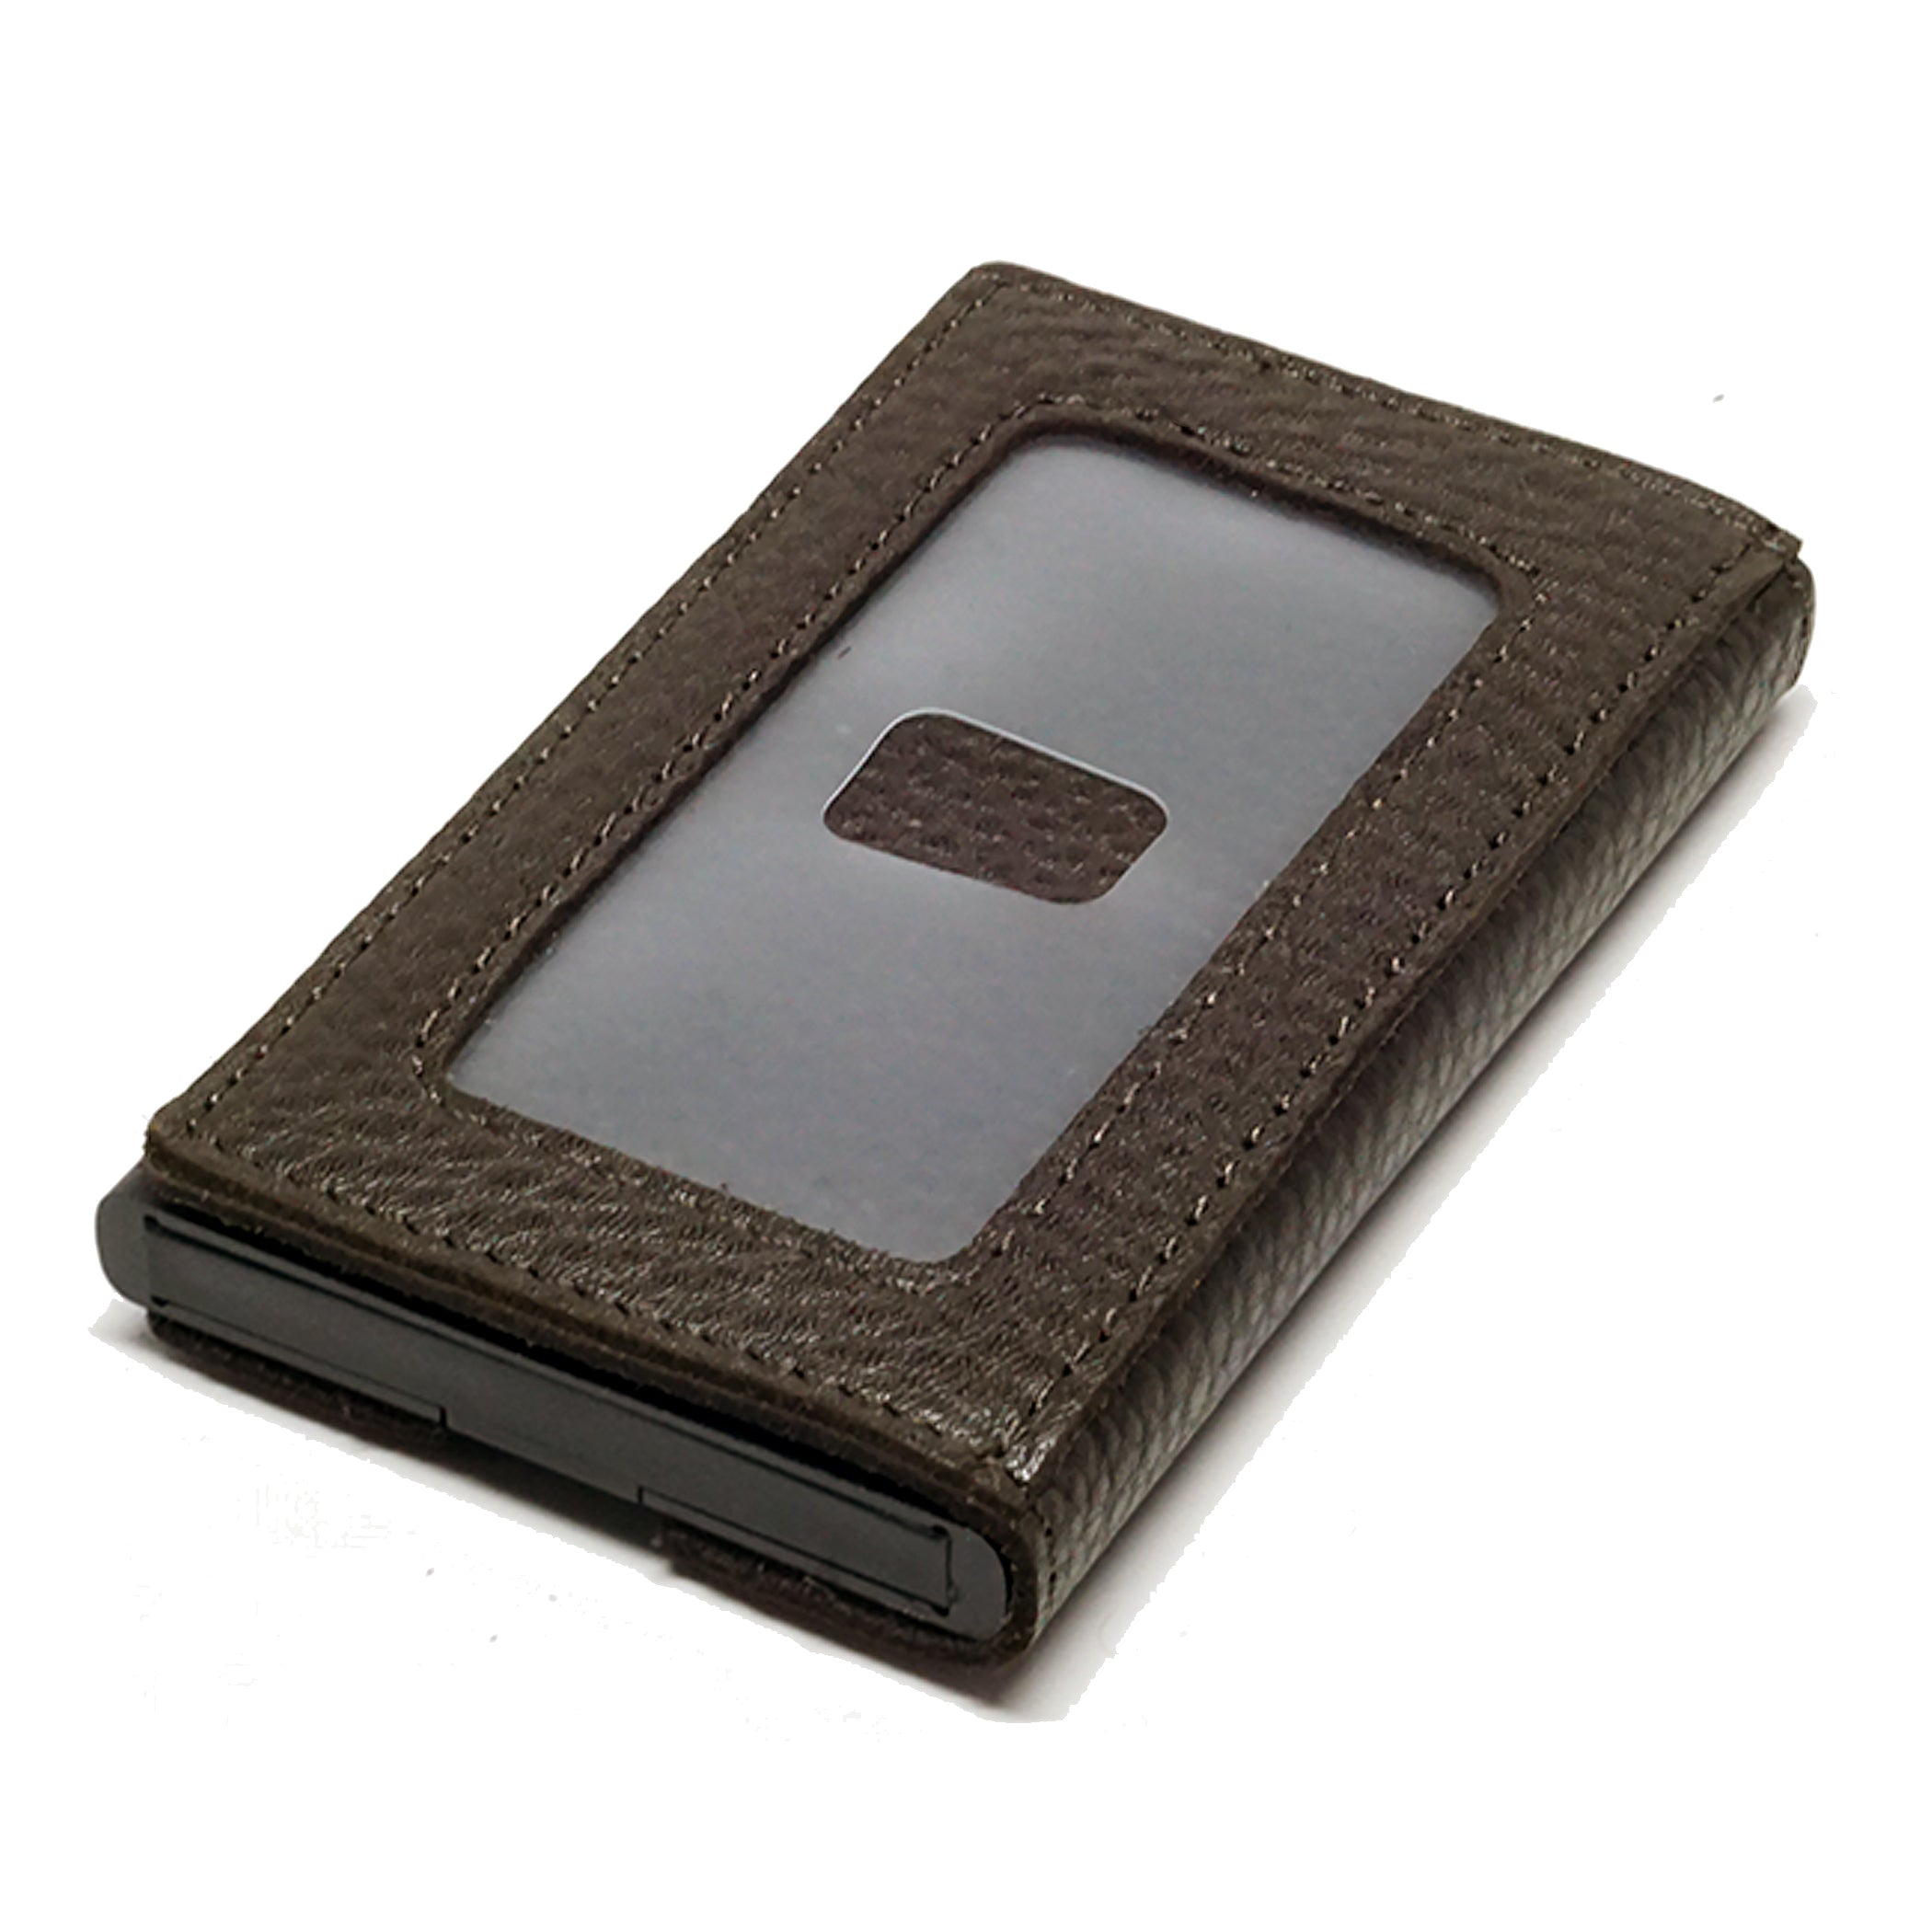 Card Blocr Credit Card Holder in Black Wrapped in Dark Chocolate Brown Leather | RFID Wallet Backside